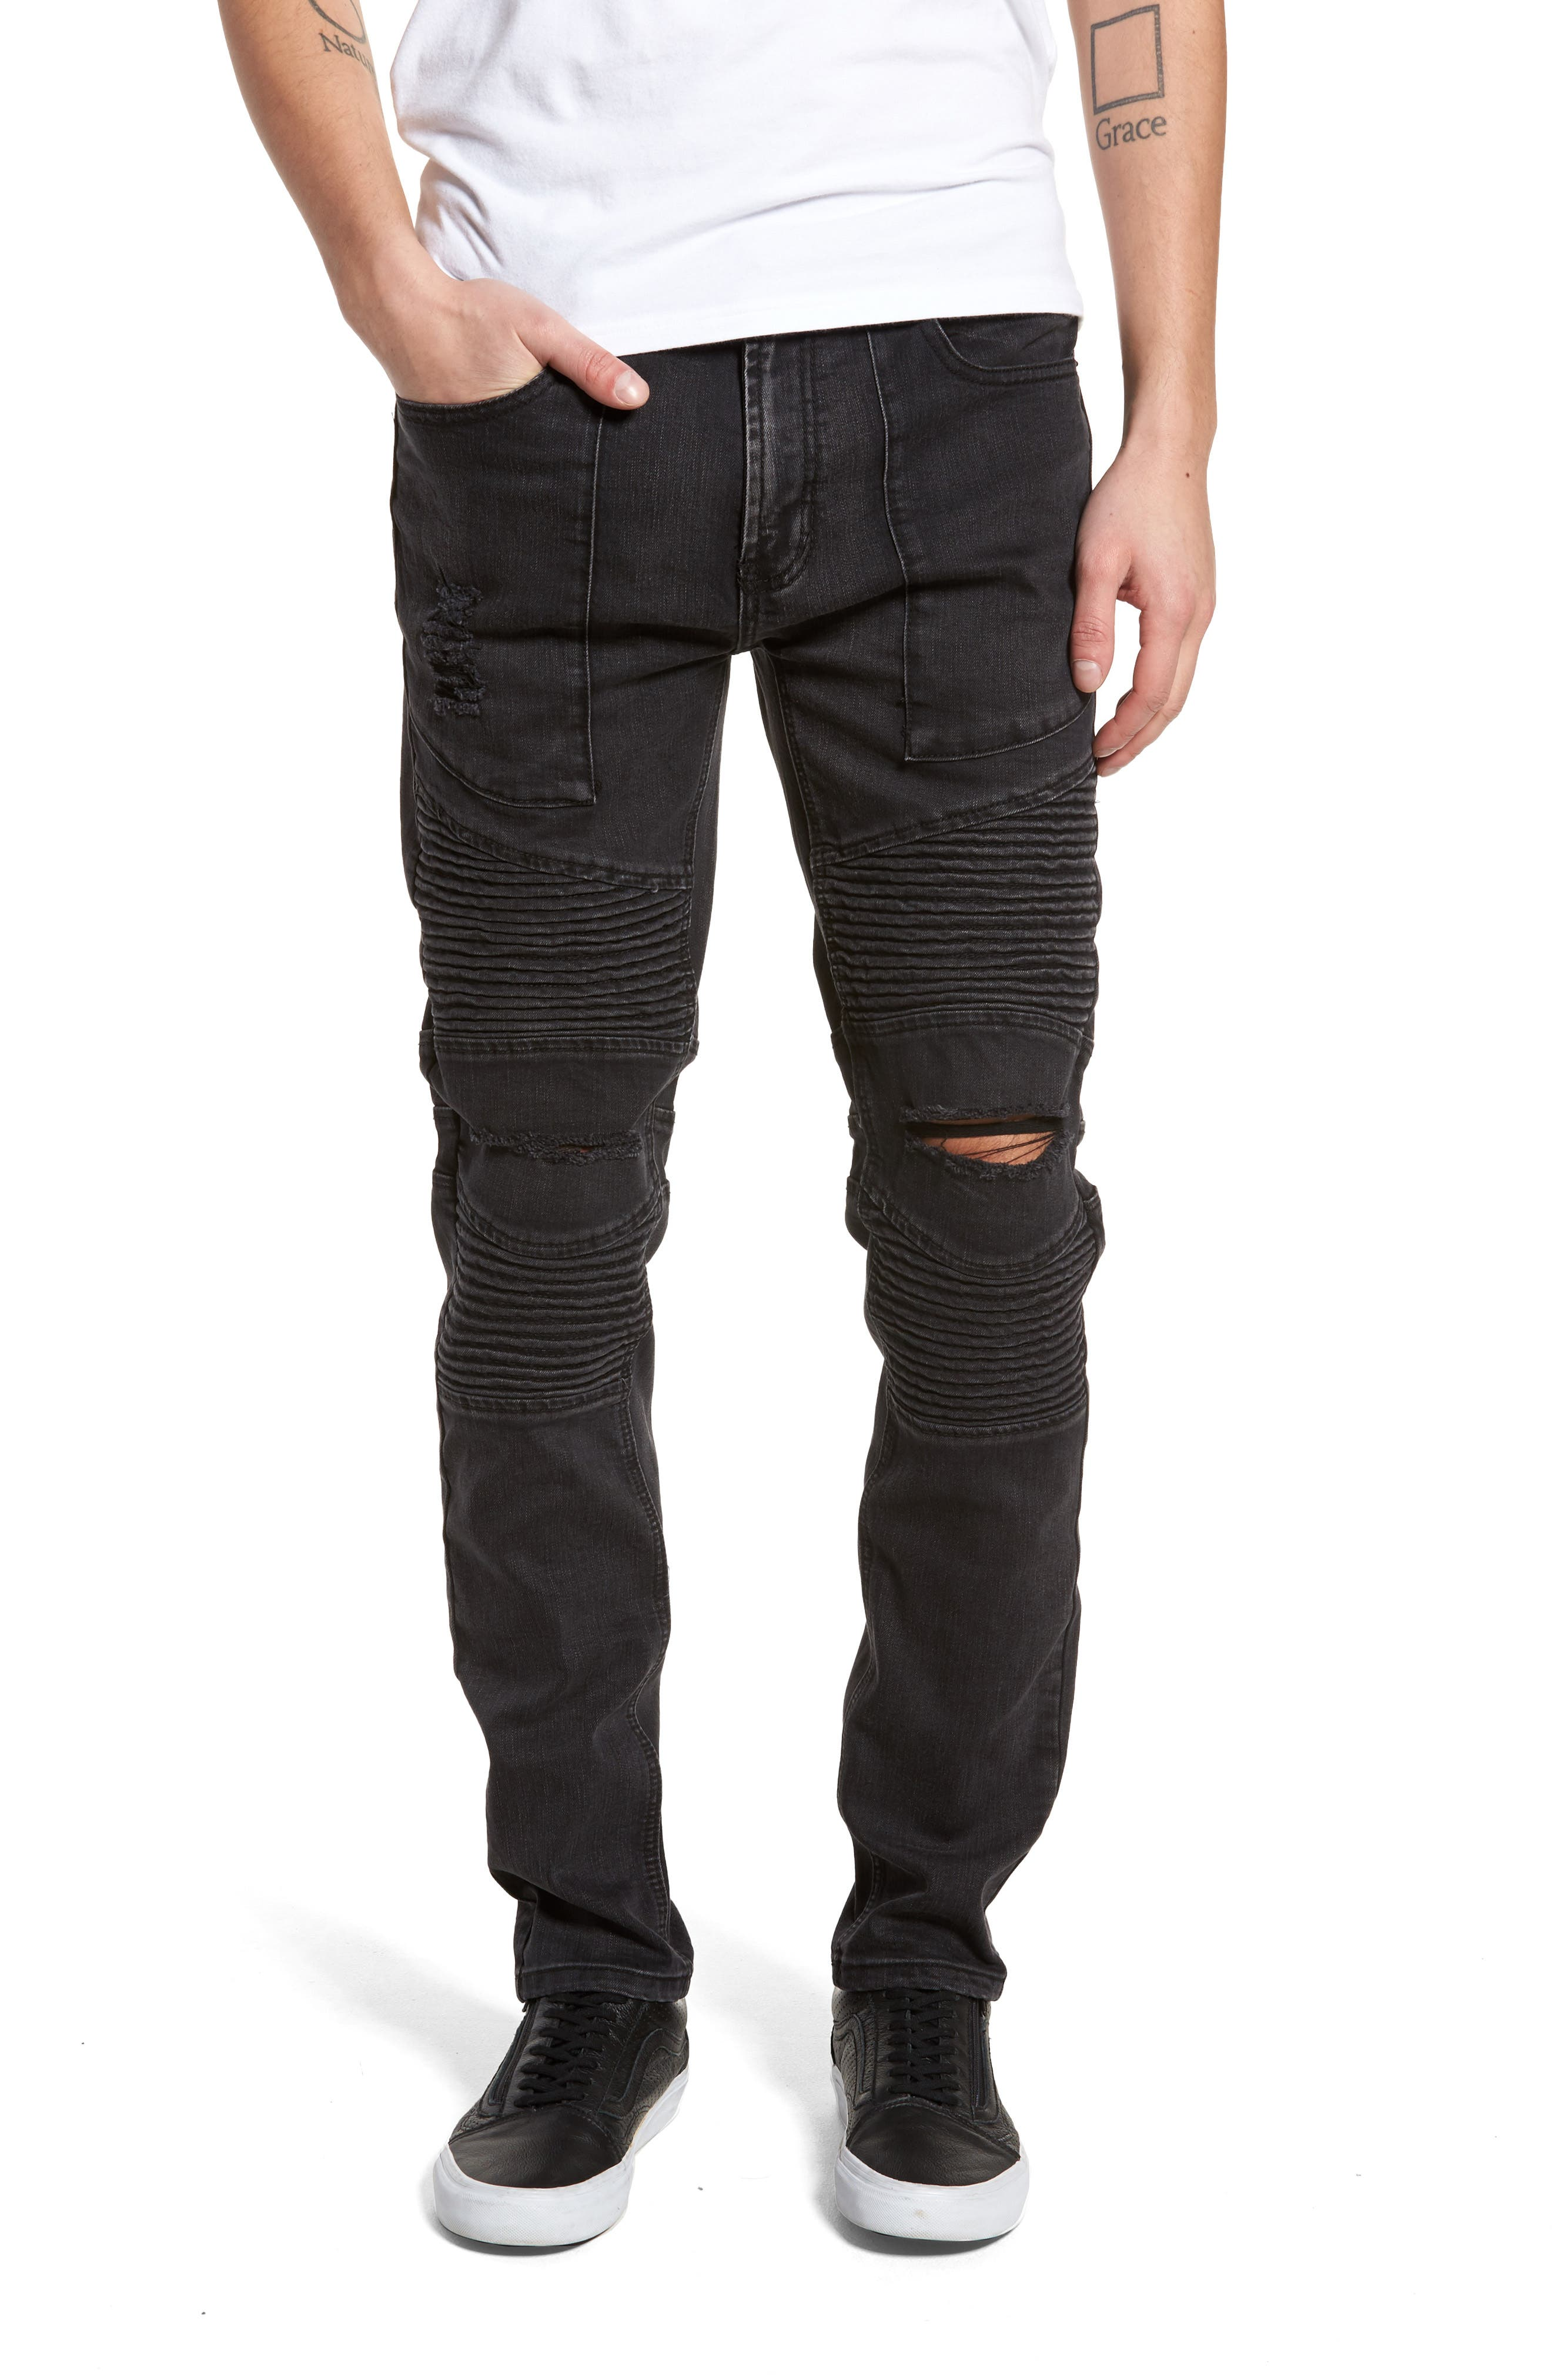 Baxter Ripped Jeans,                         Main,                         color, Faded Black